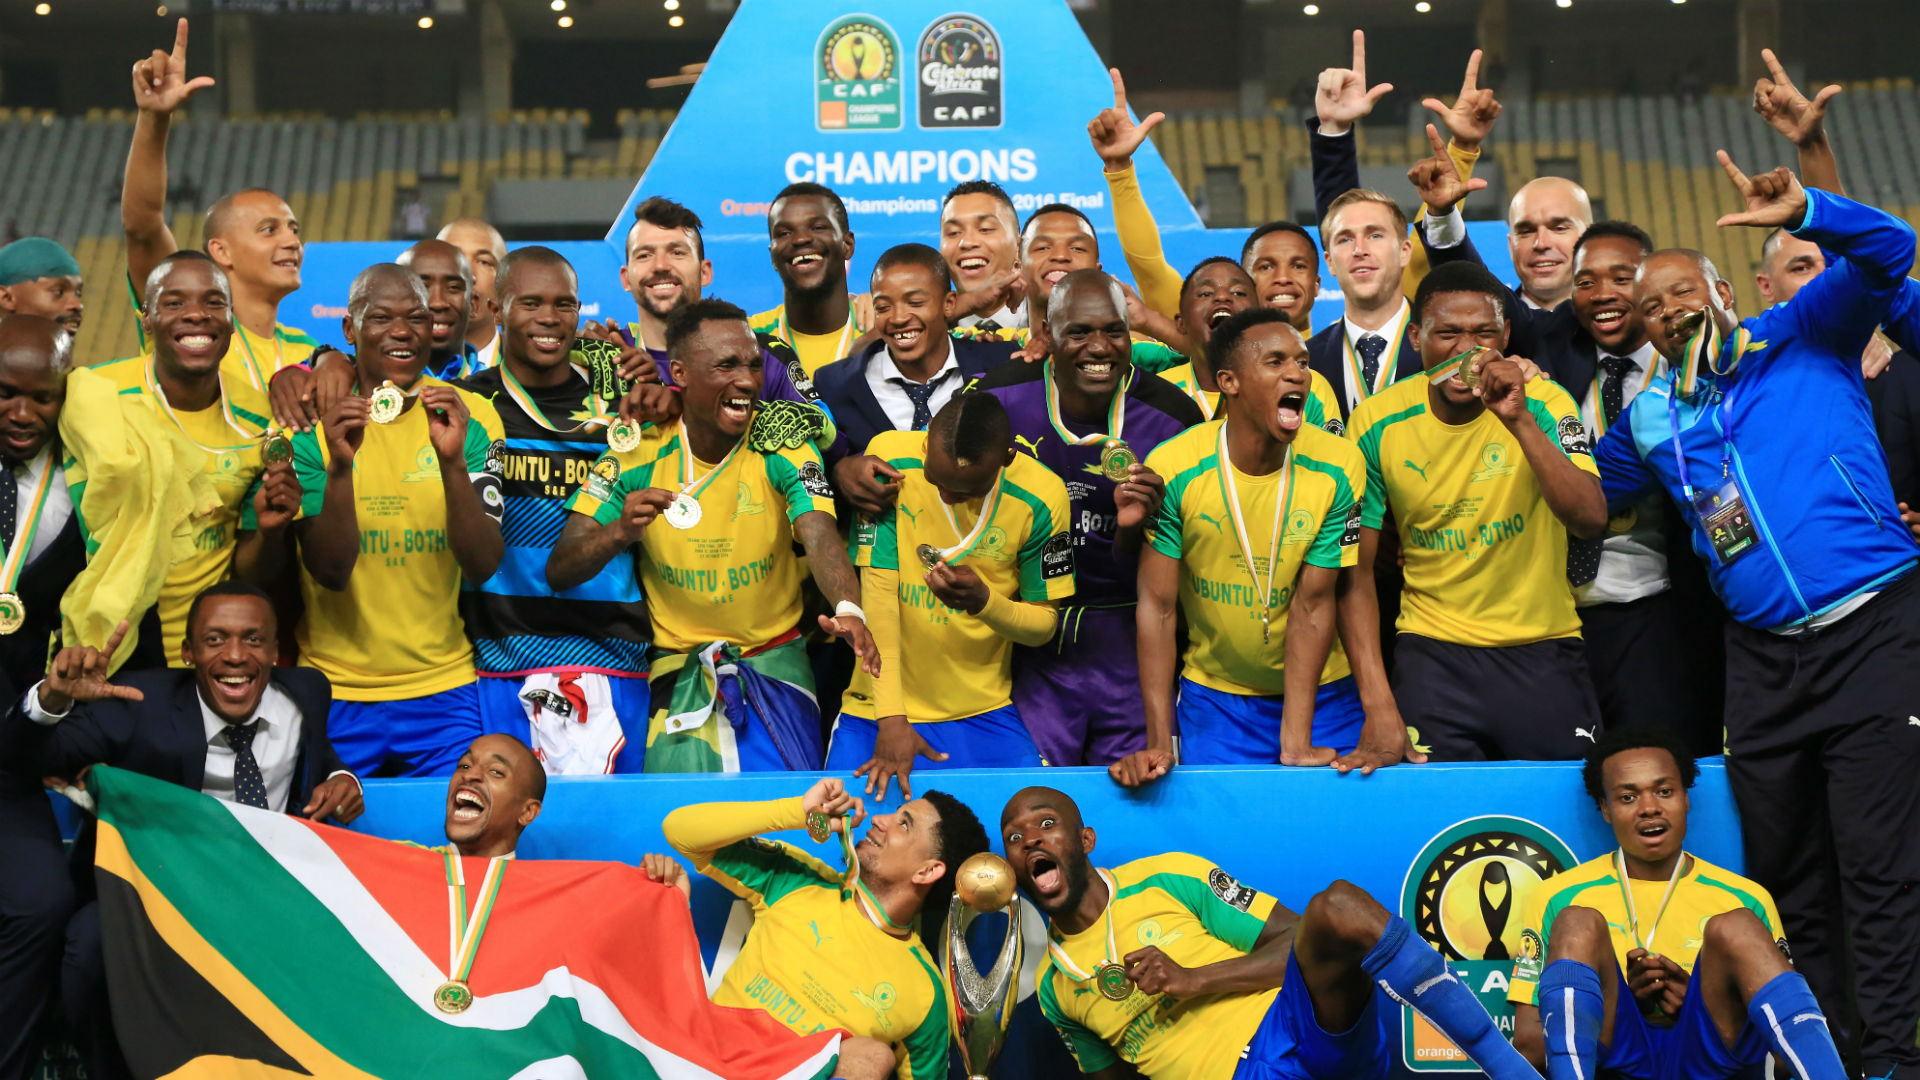 Mamelodi Sundowns celebrate winning Caf Champions League